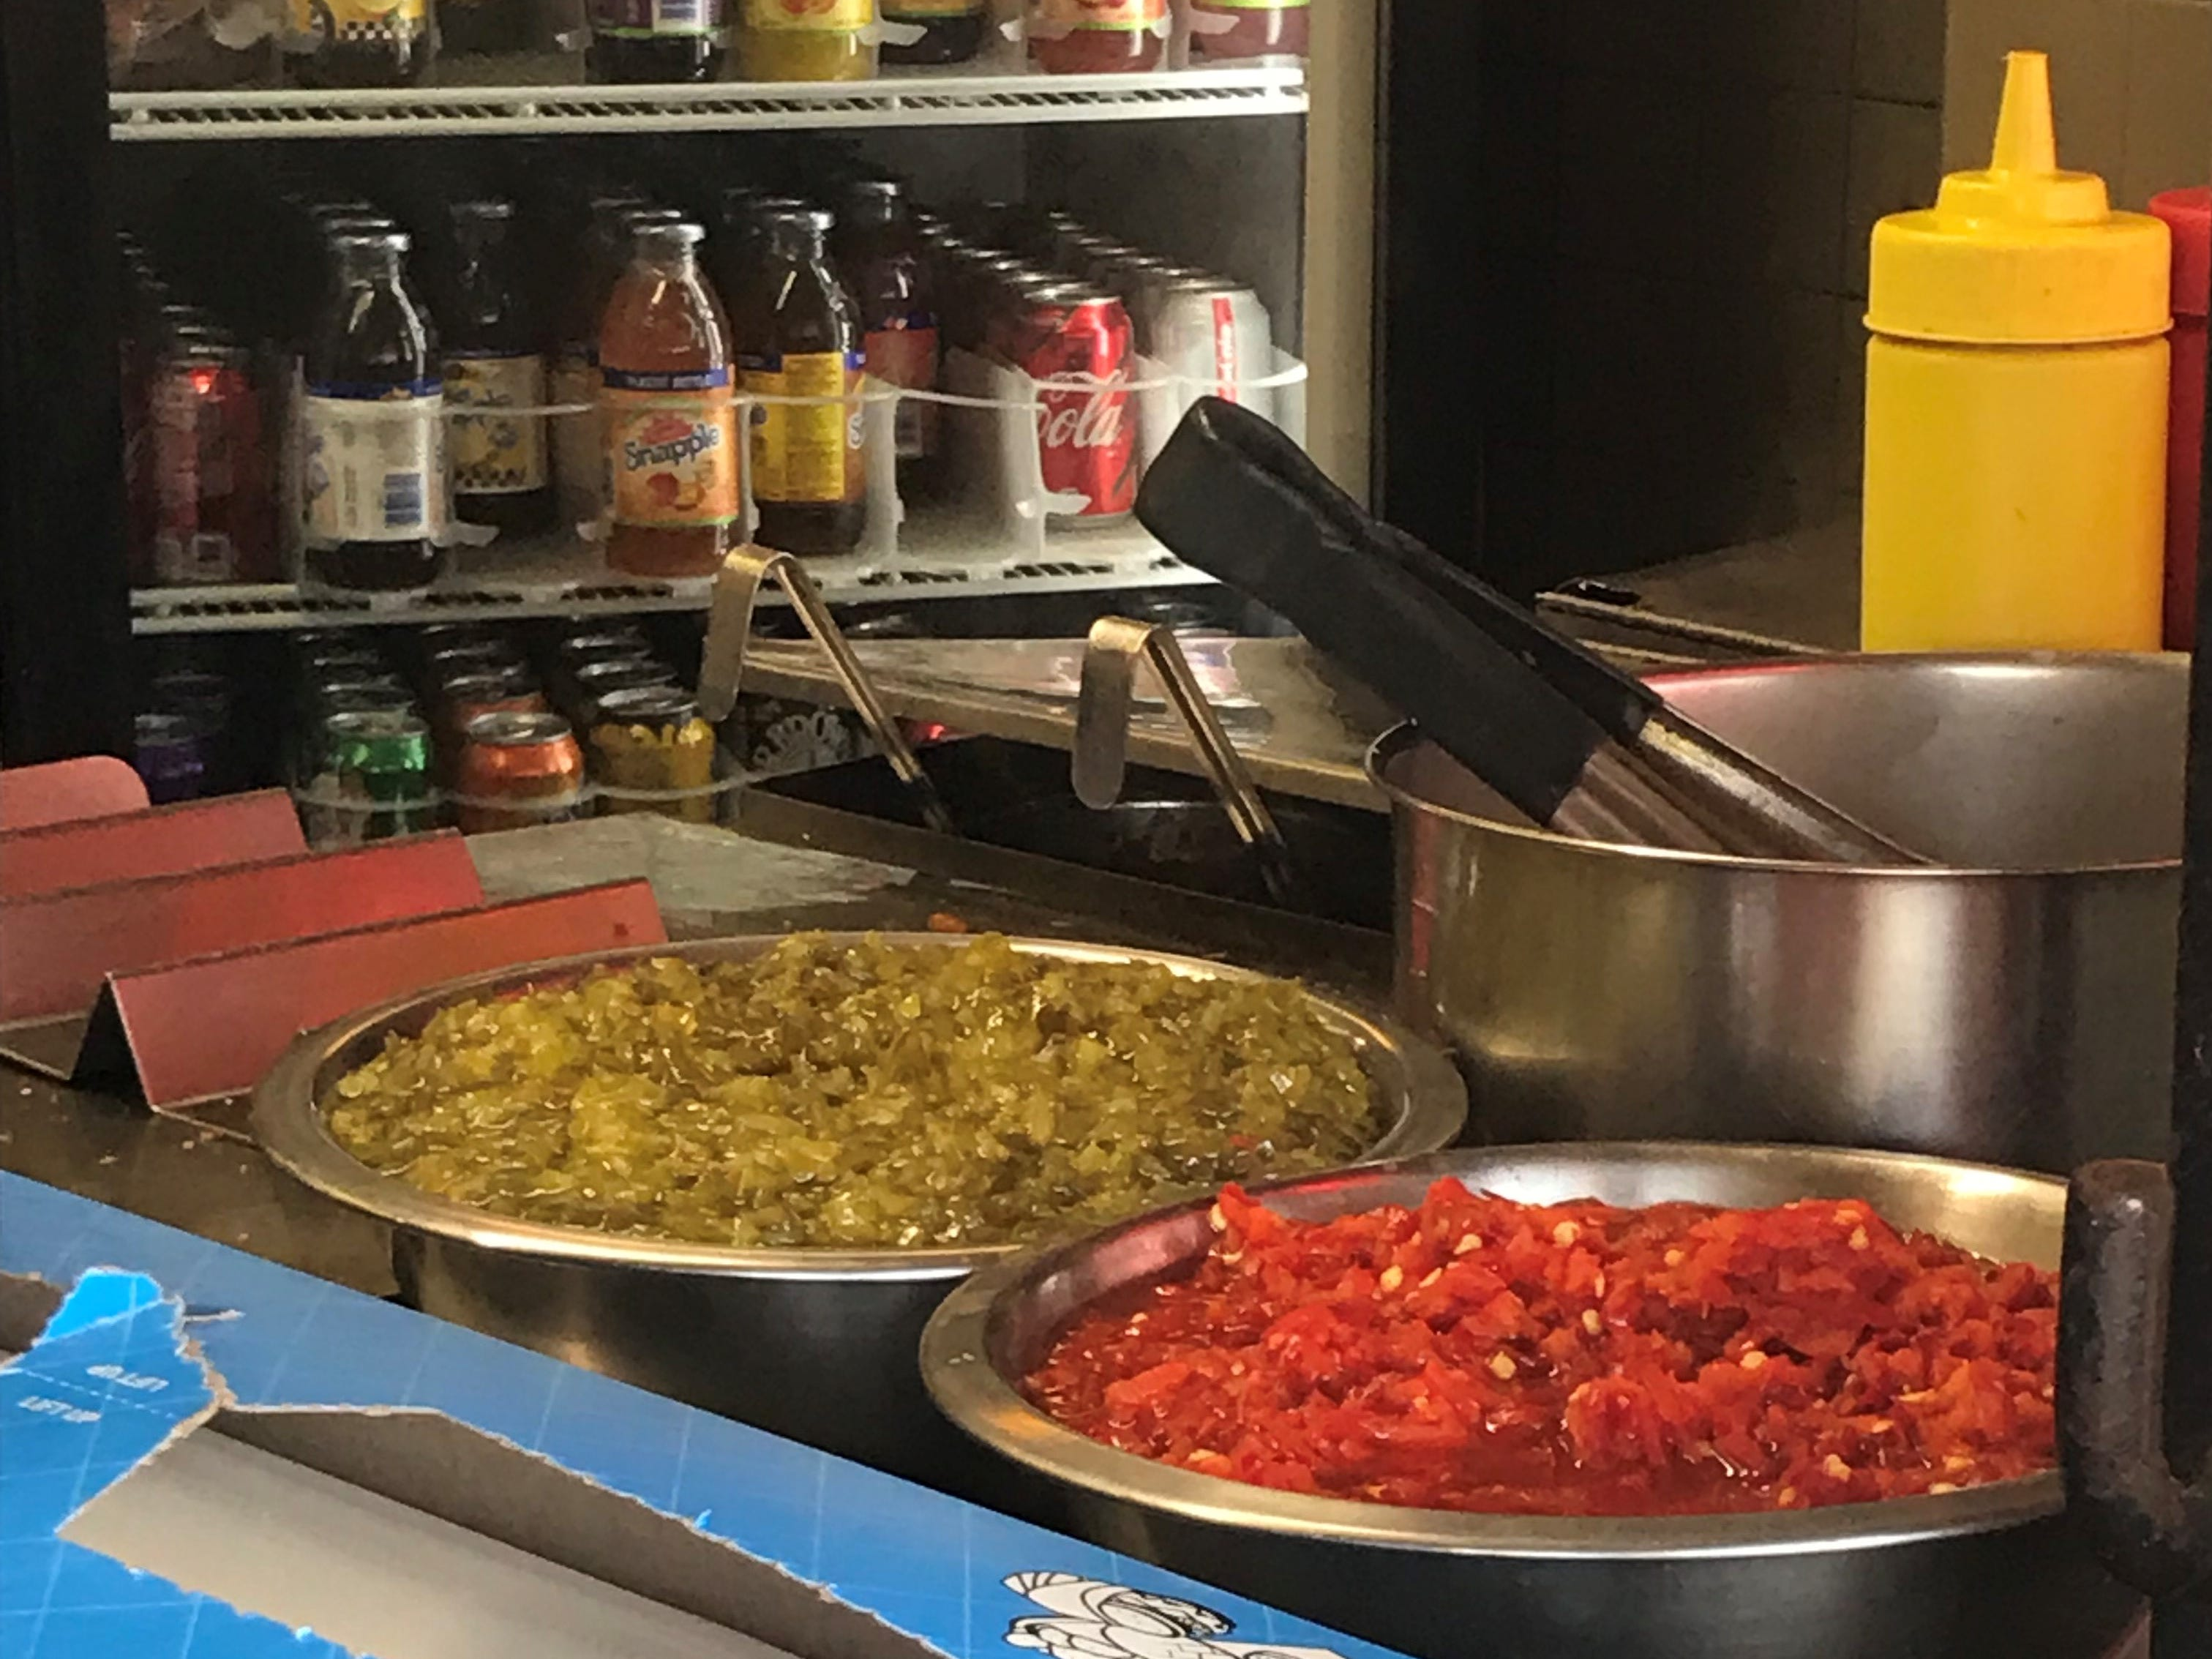 The standard Italian hot dog has fried potatoes, onions, peppers and ketchup, but you can dress it up with additional condiments as you see fit.